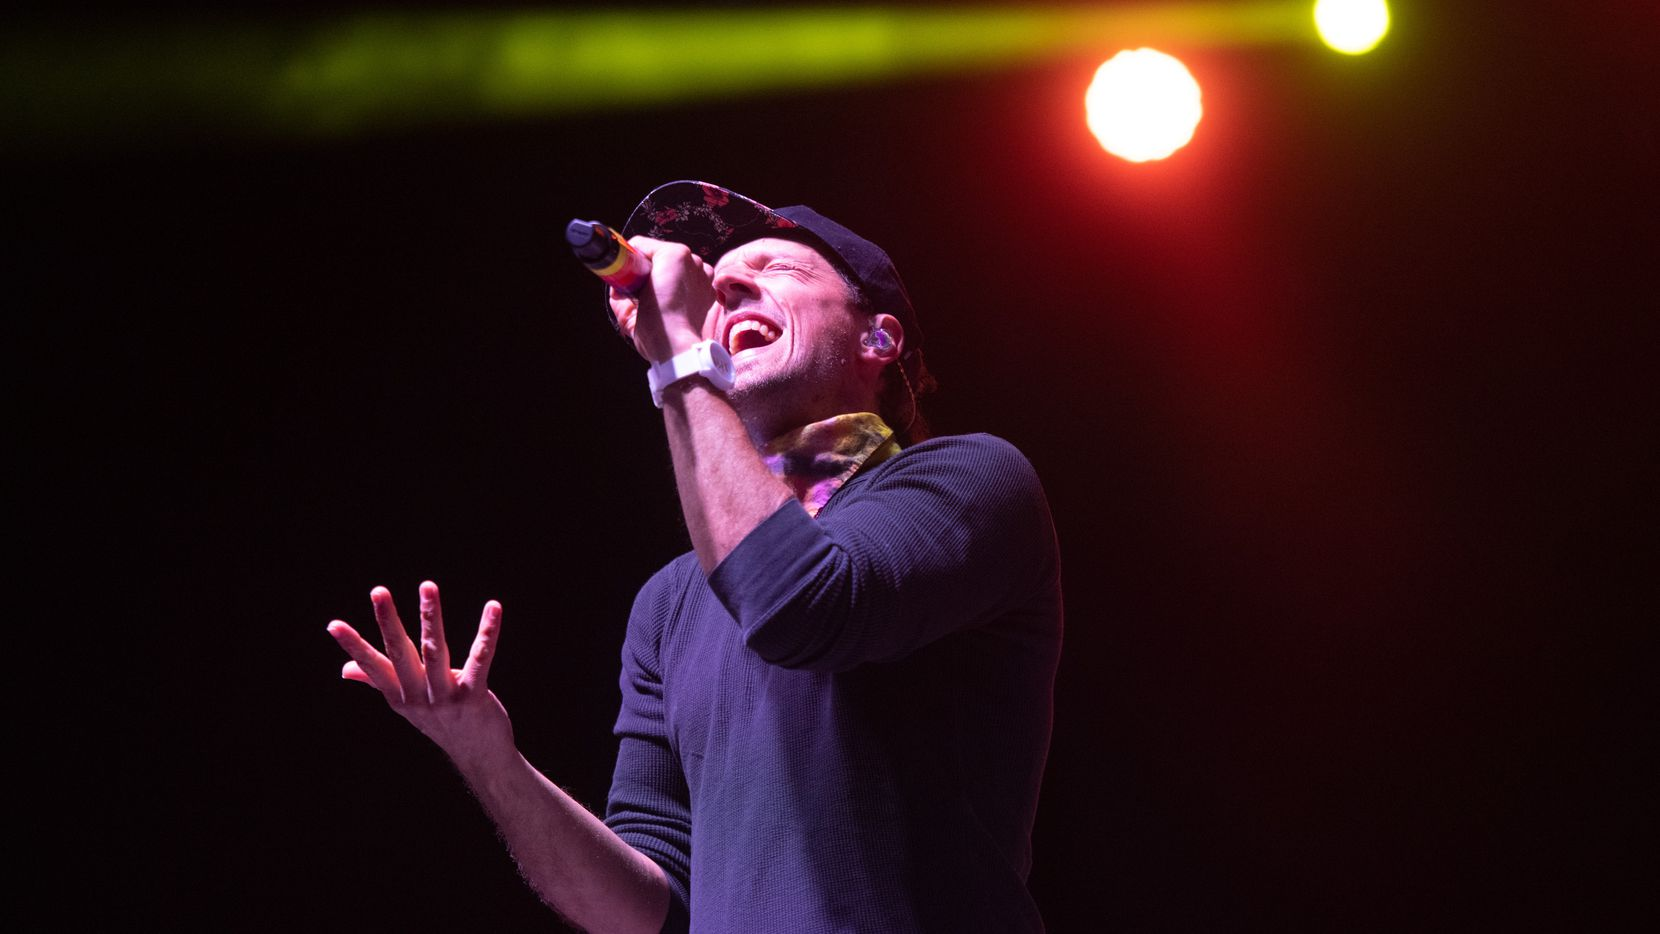 """Jason Mraz -- ANAHEIM, CALIFORNIA - APRIL 23: Singer Jason Mraz performs on stage during a drive in concert in support of his new album """"Look for the Good"""" at City National Grove of Anaheim on April 23, 2021 in Anaheim, California. (Photo by Scott Dudelson/Getty Images)"""